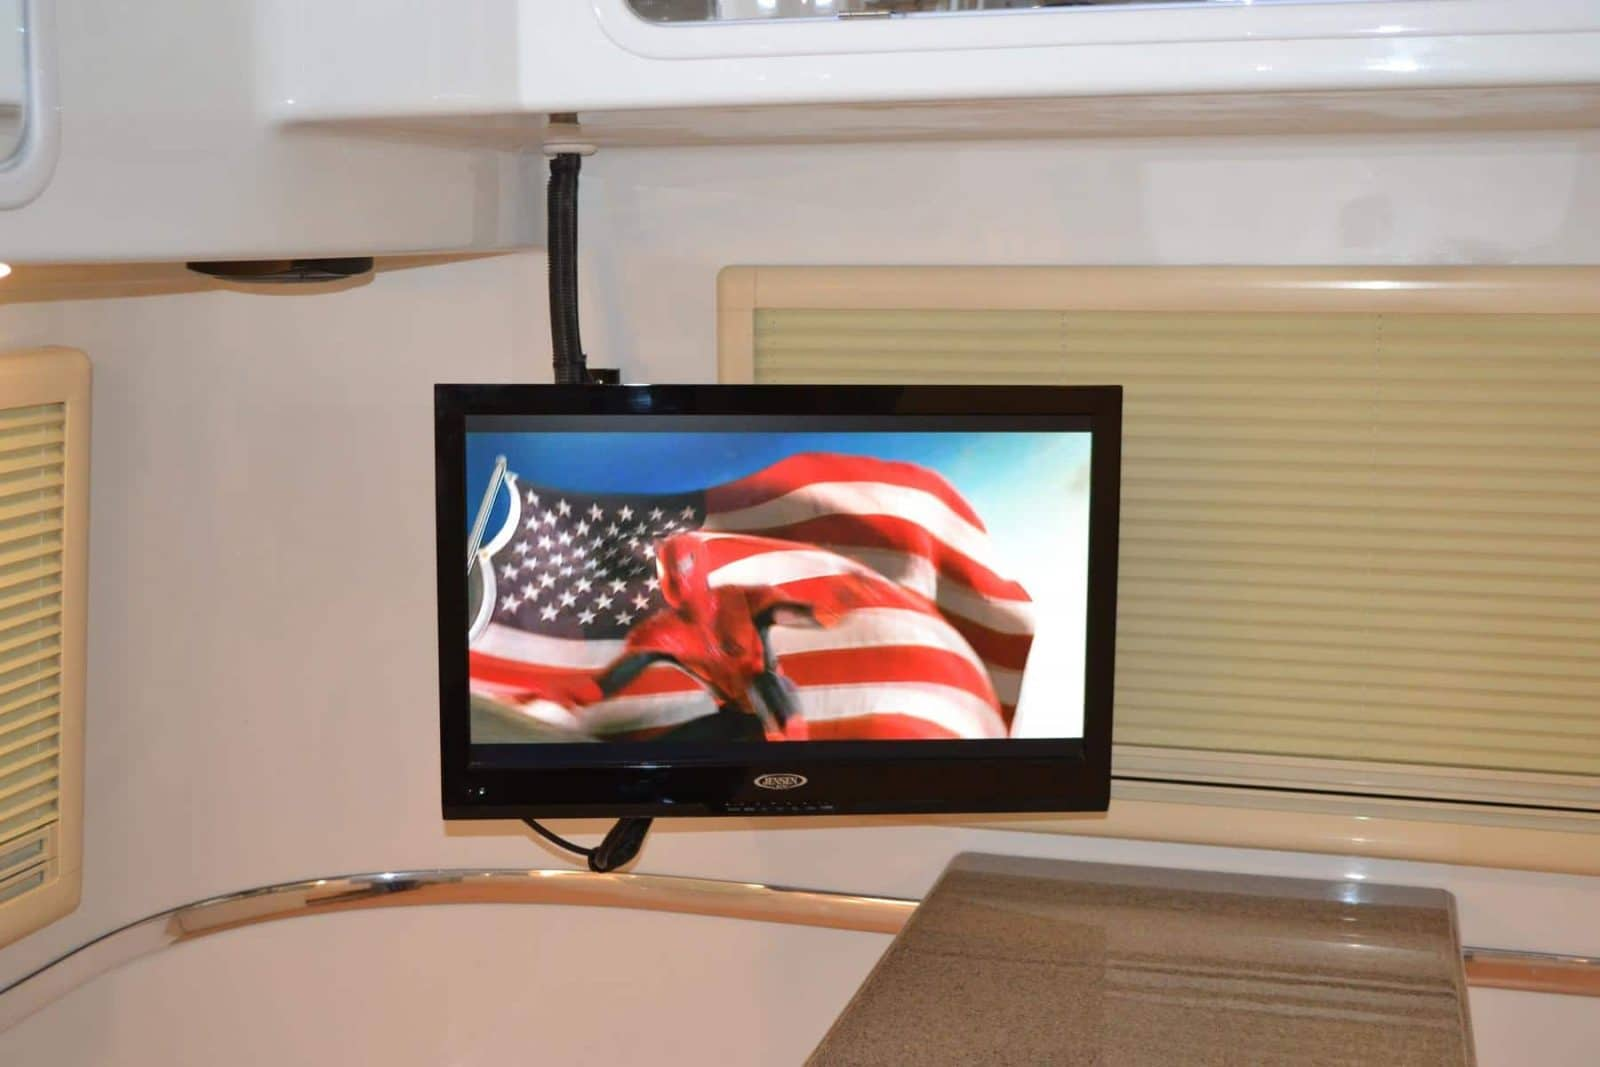 oliver travel trailers standard options 24 inch flat screen tv